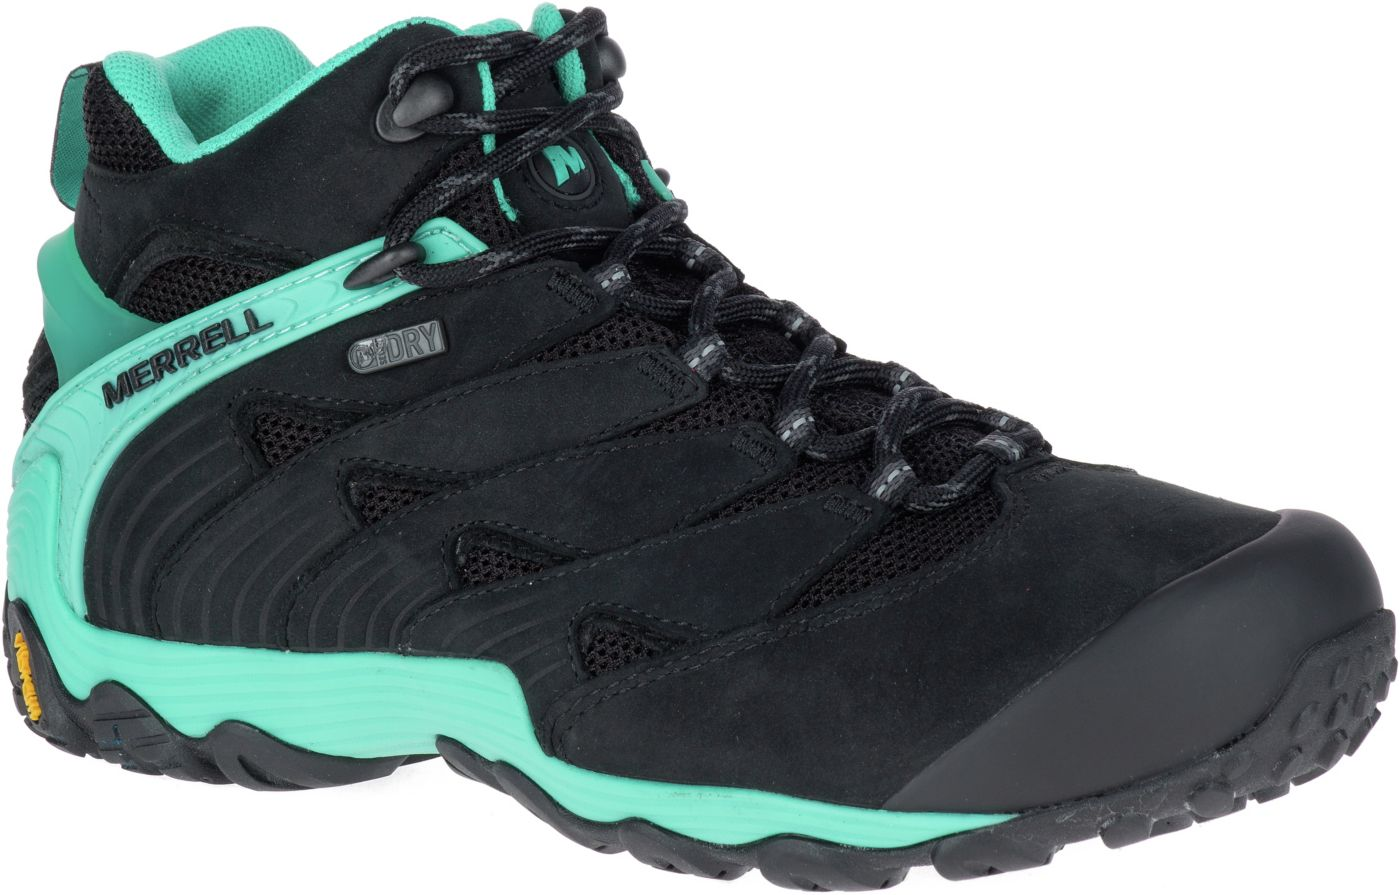 Merrell Women's Chameleon 7 Mid Waterproof Hiking Boots